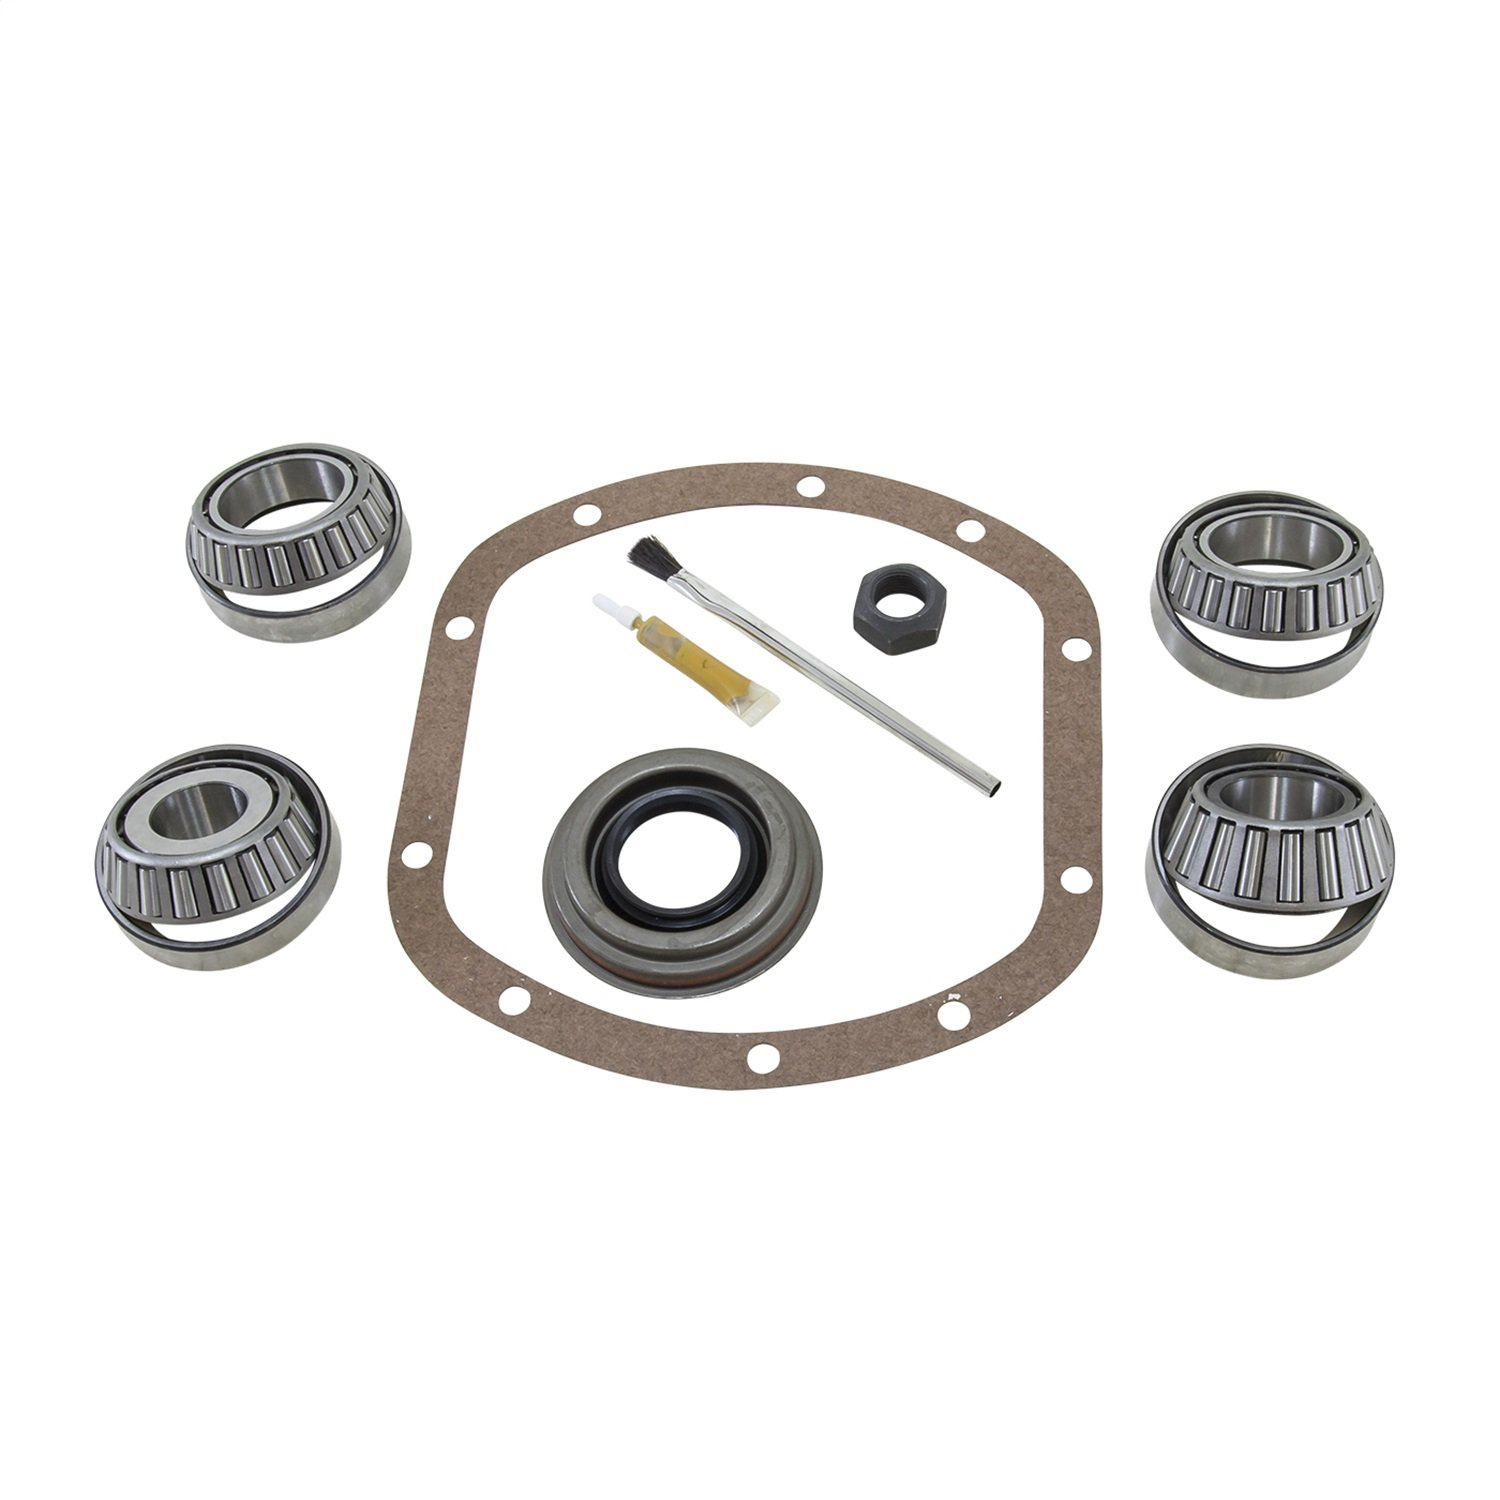 Yukon (BK D30-F) Bearing Installation Kit for Grand Cherokee Dana 30 Differential by Yukon Gear